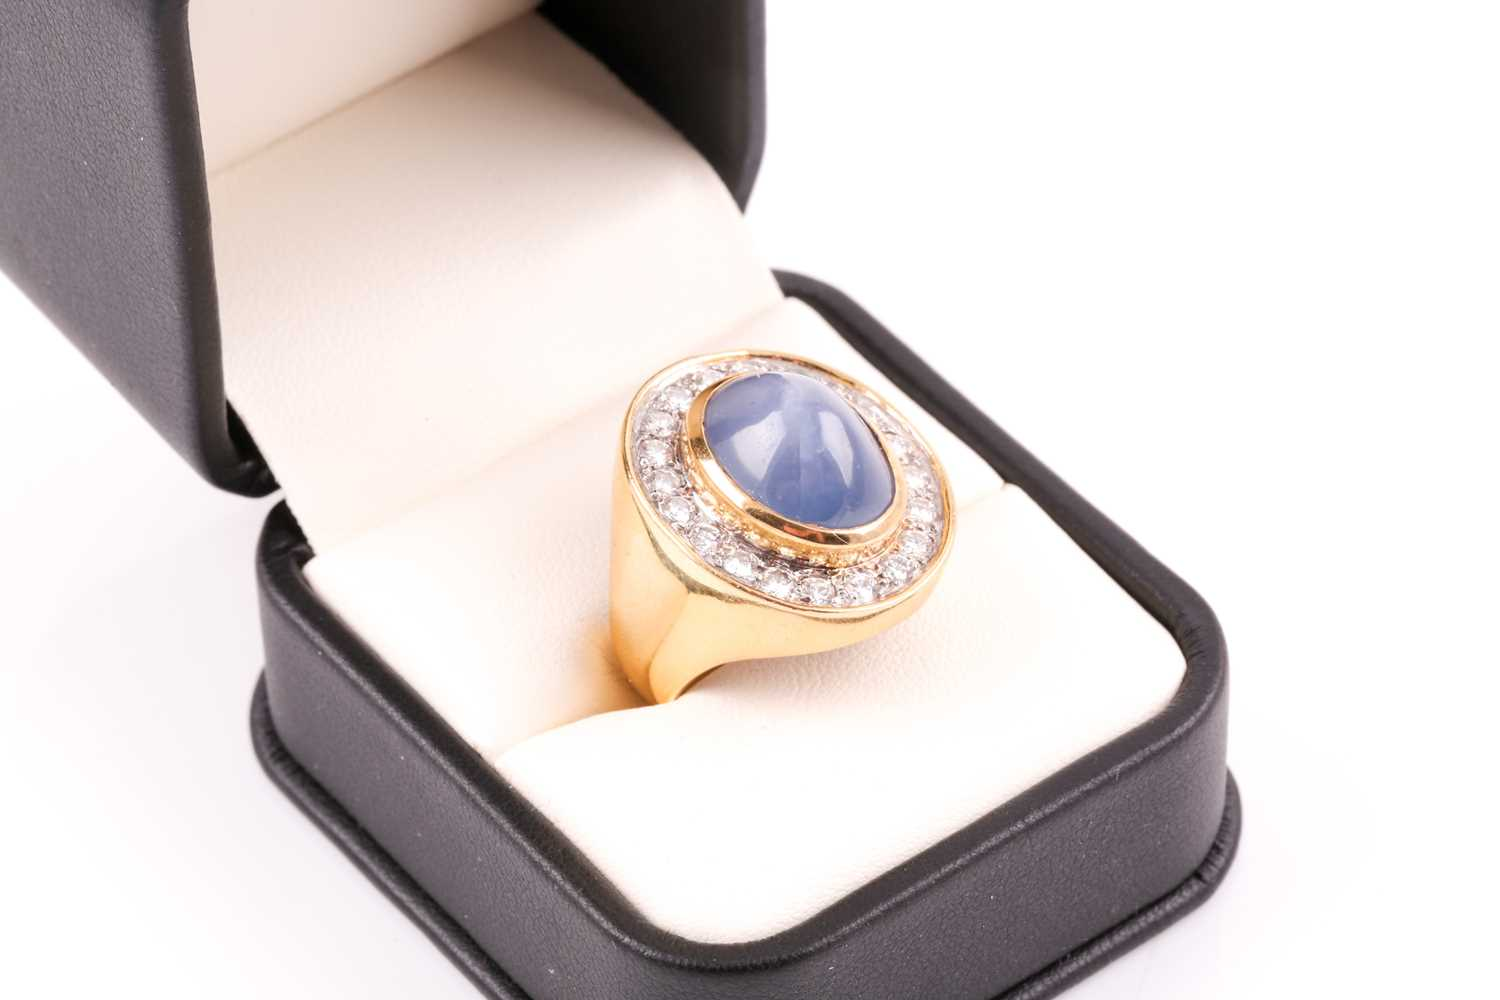 An 18ct yellow gold, diamond, and star sapphire cocktail ring, set with a domed cabochon sapphire, - Image 7 of 9